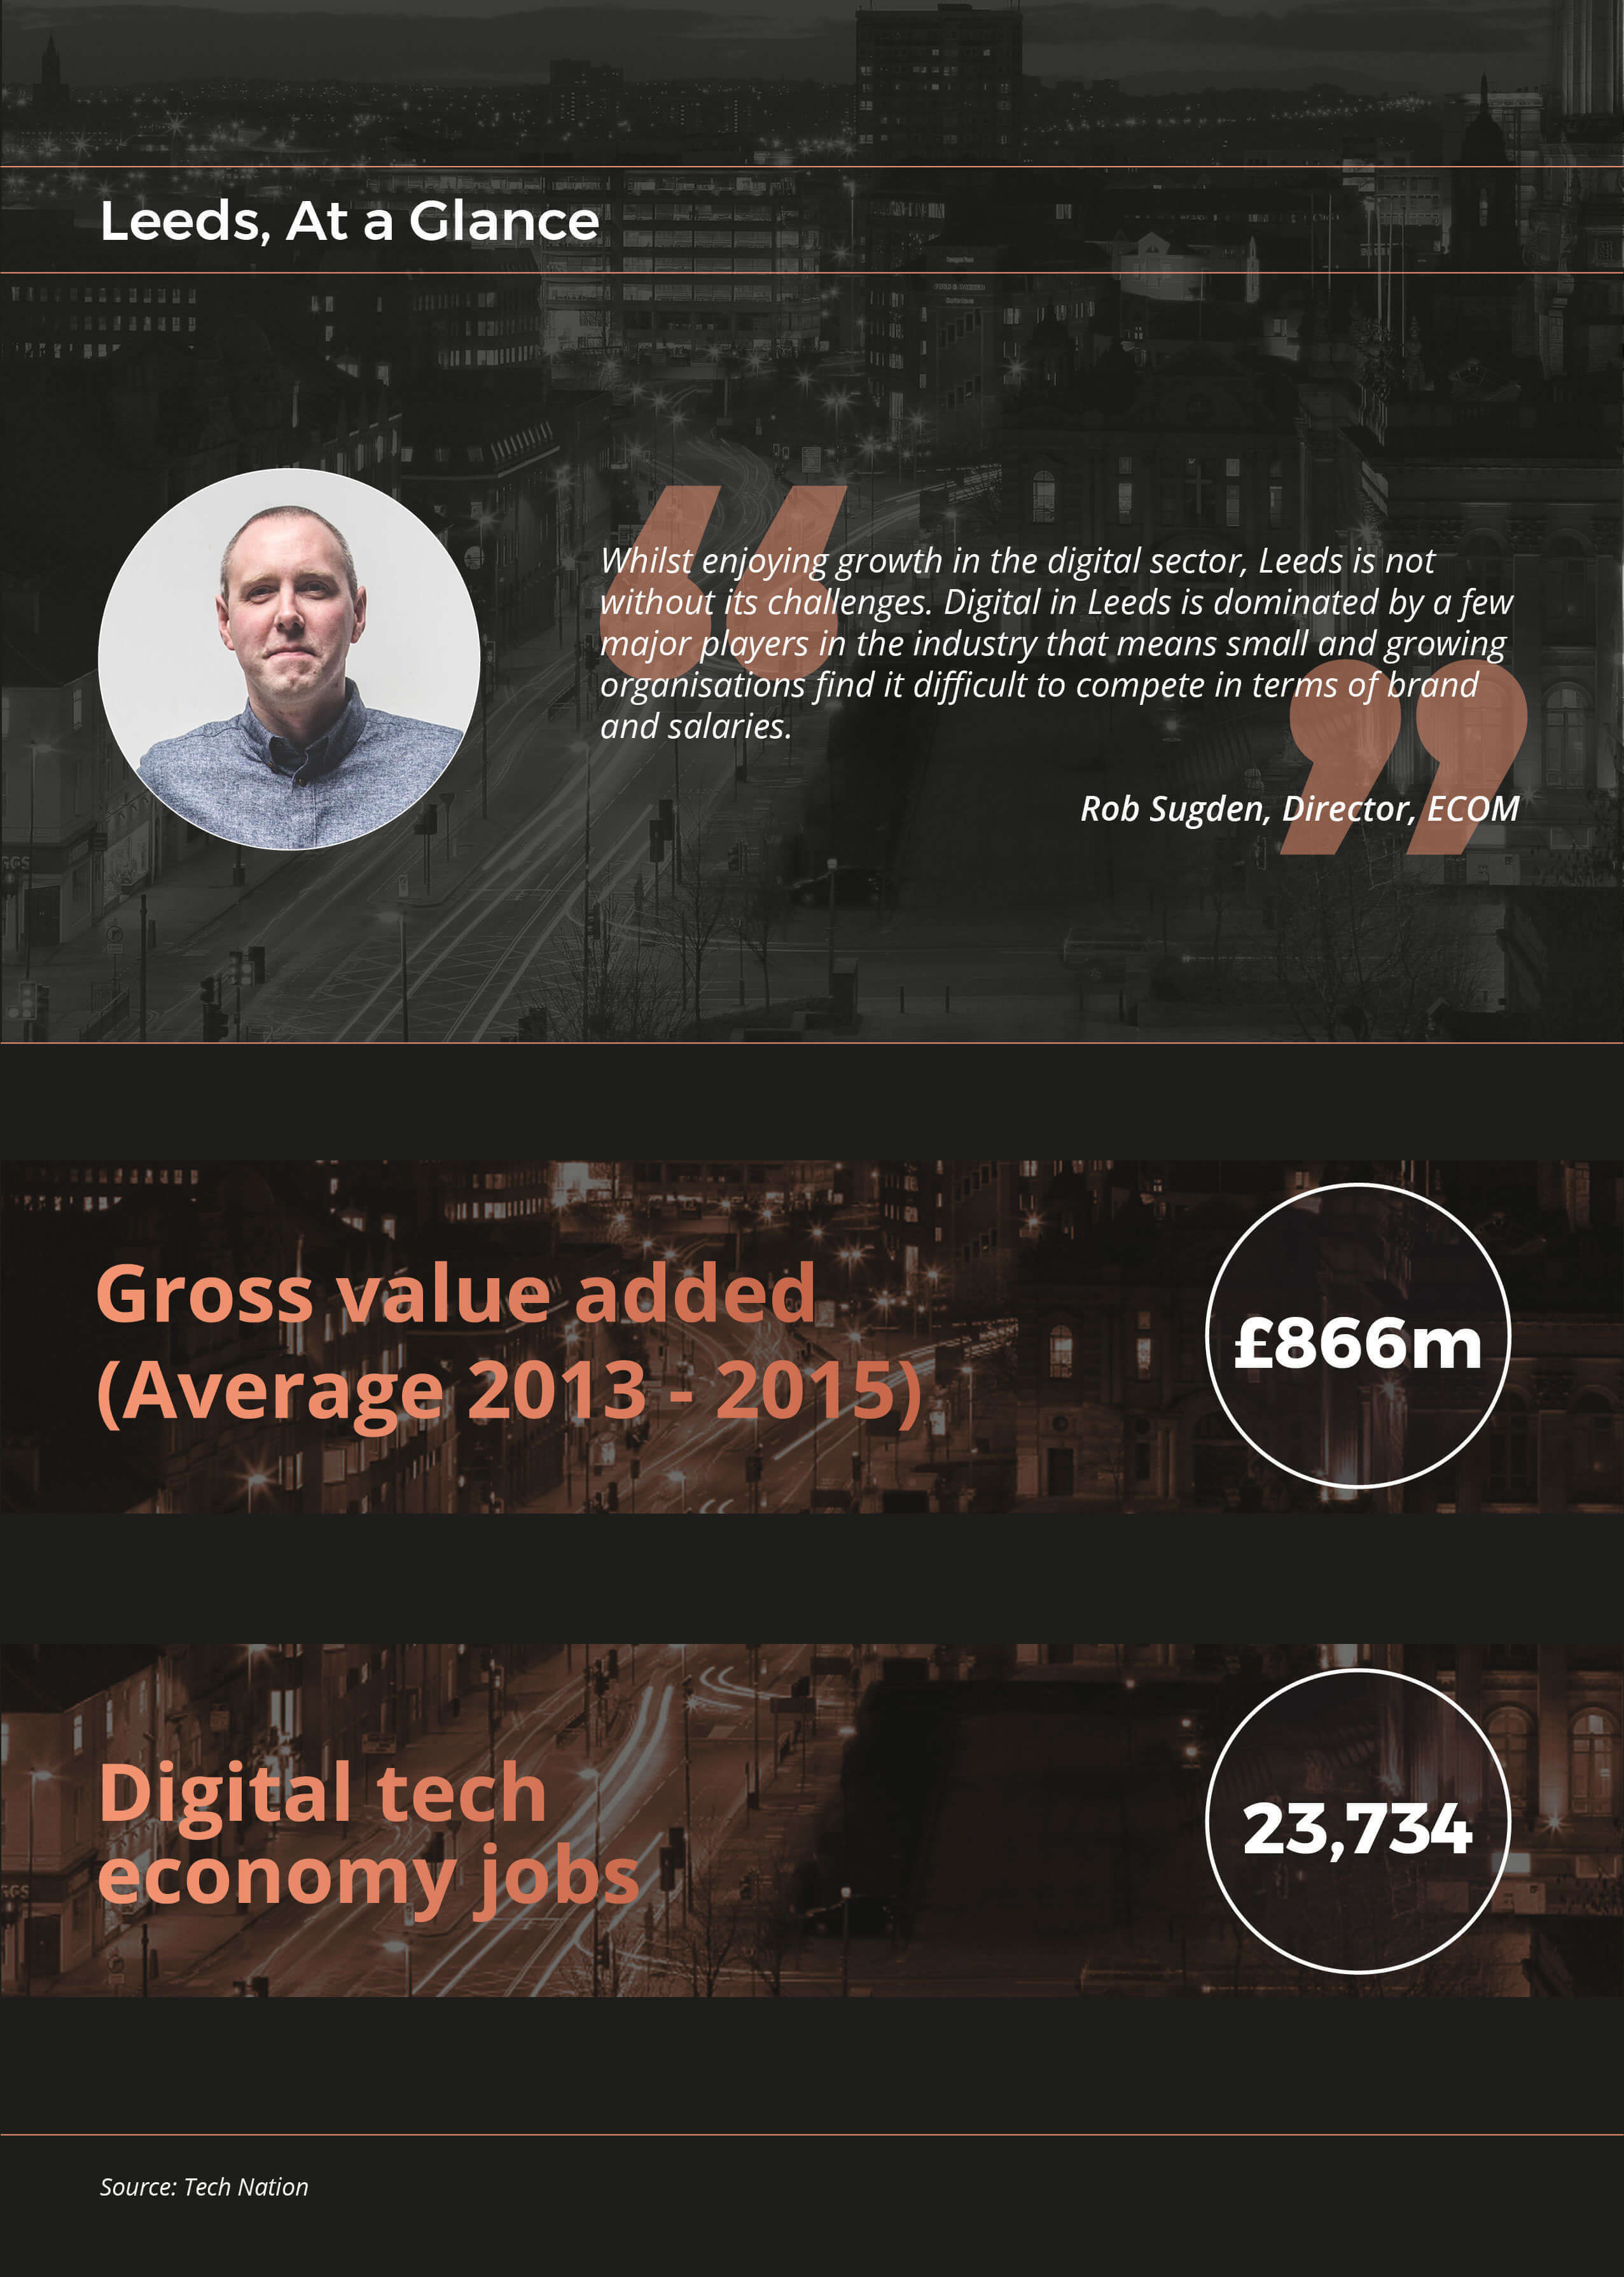 Leeds Digital Economy - At a Glance